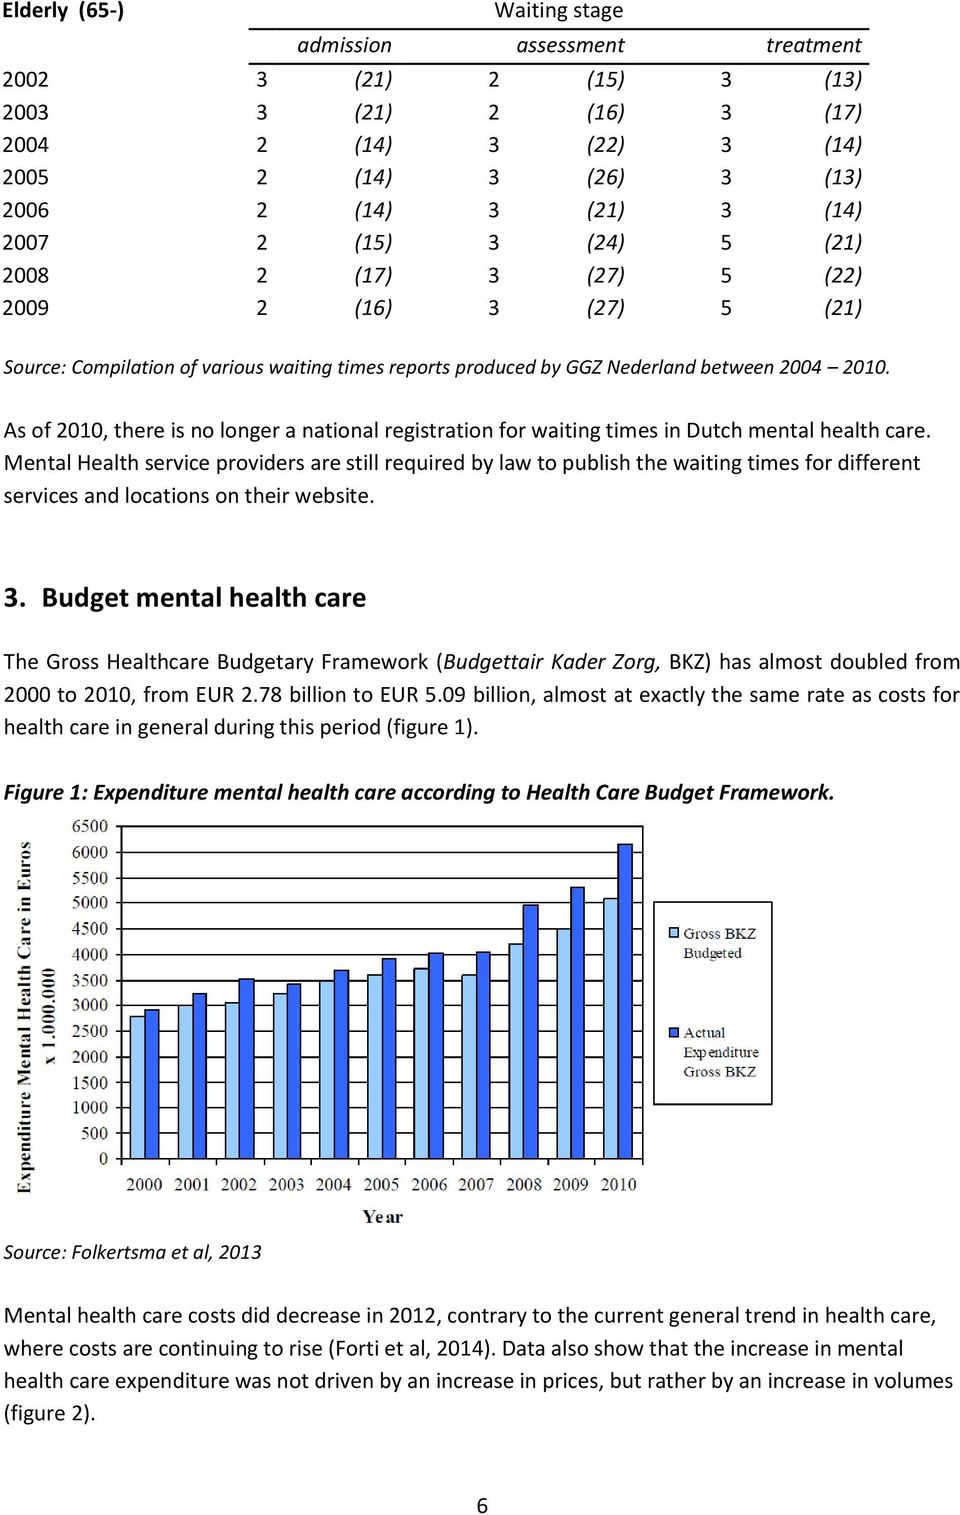 As of 2010, there is no longer a national registration for waiting times in Dutch mental health care.